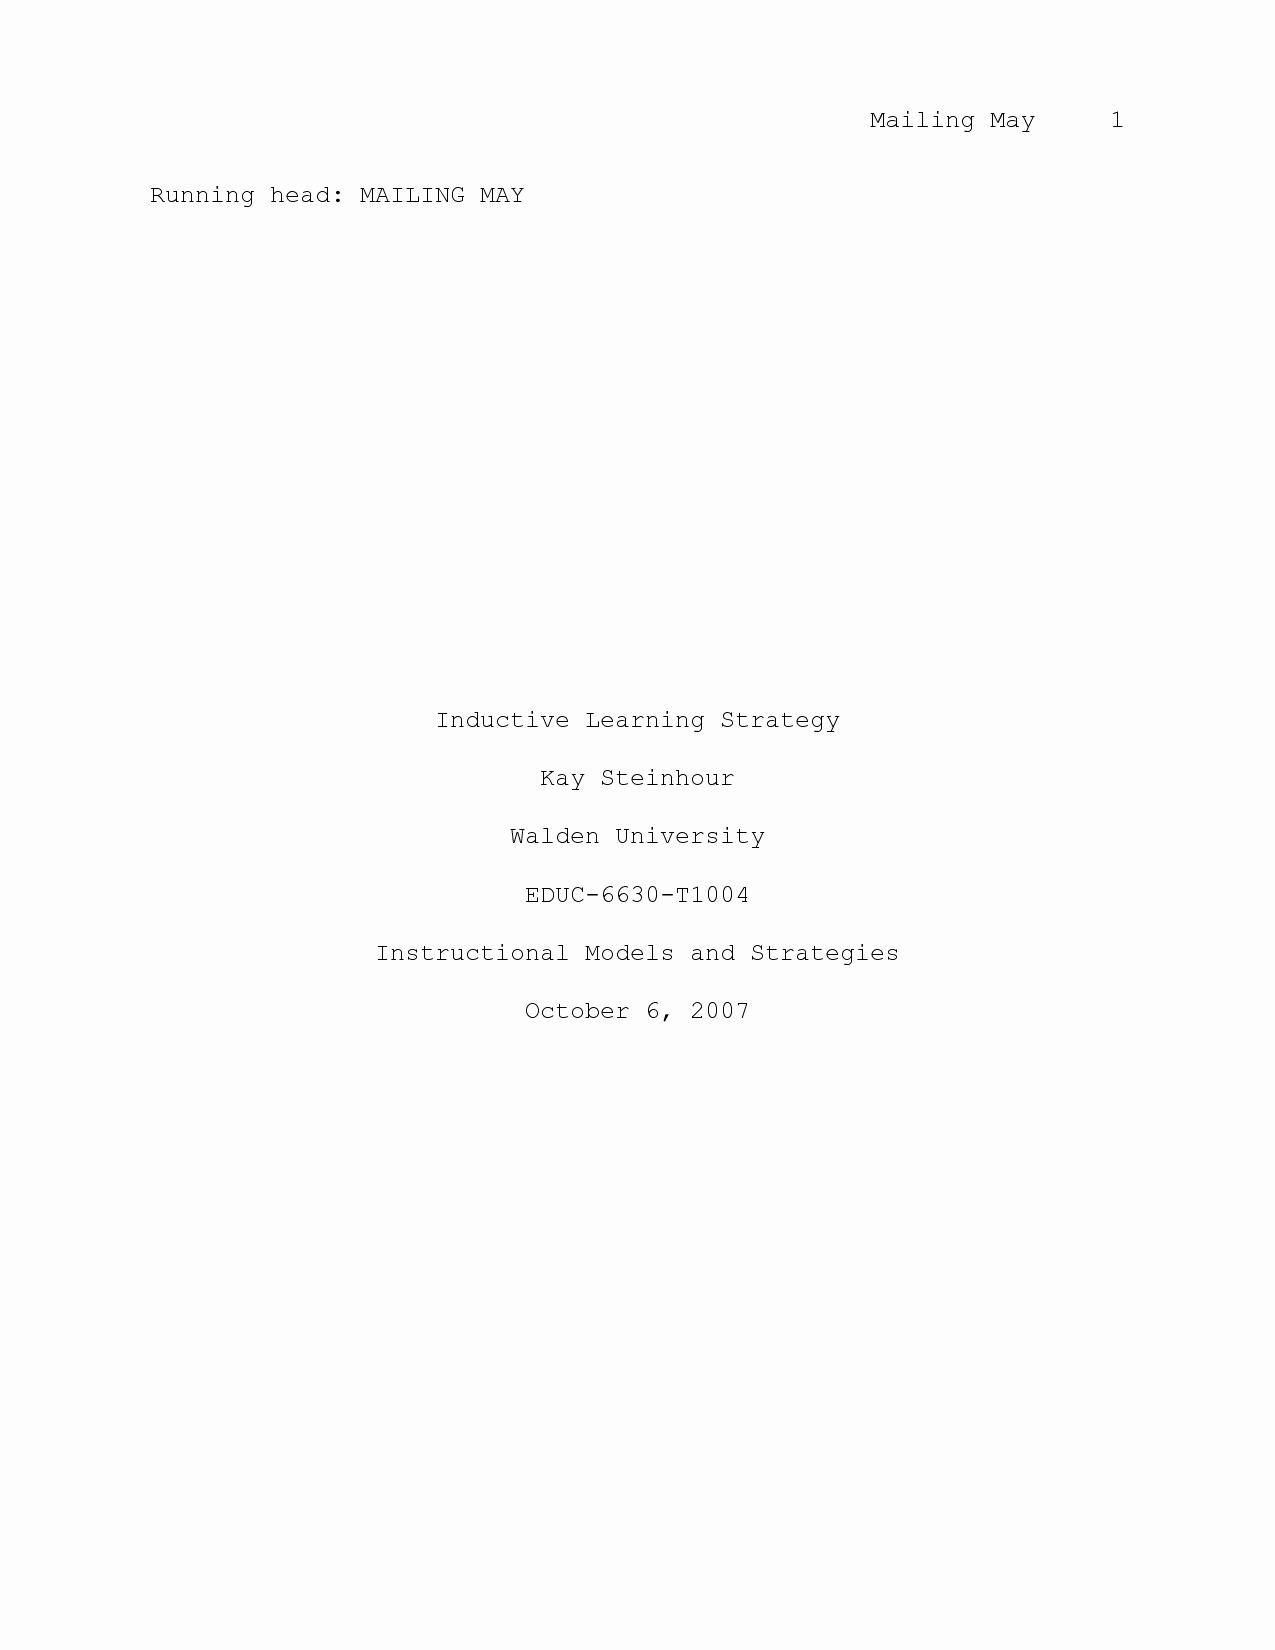 Apa Style Title Page Template Beautiful Best S Of Apa Style Cover Page Apa format Cover